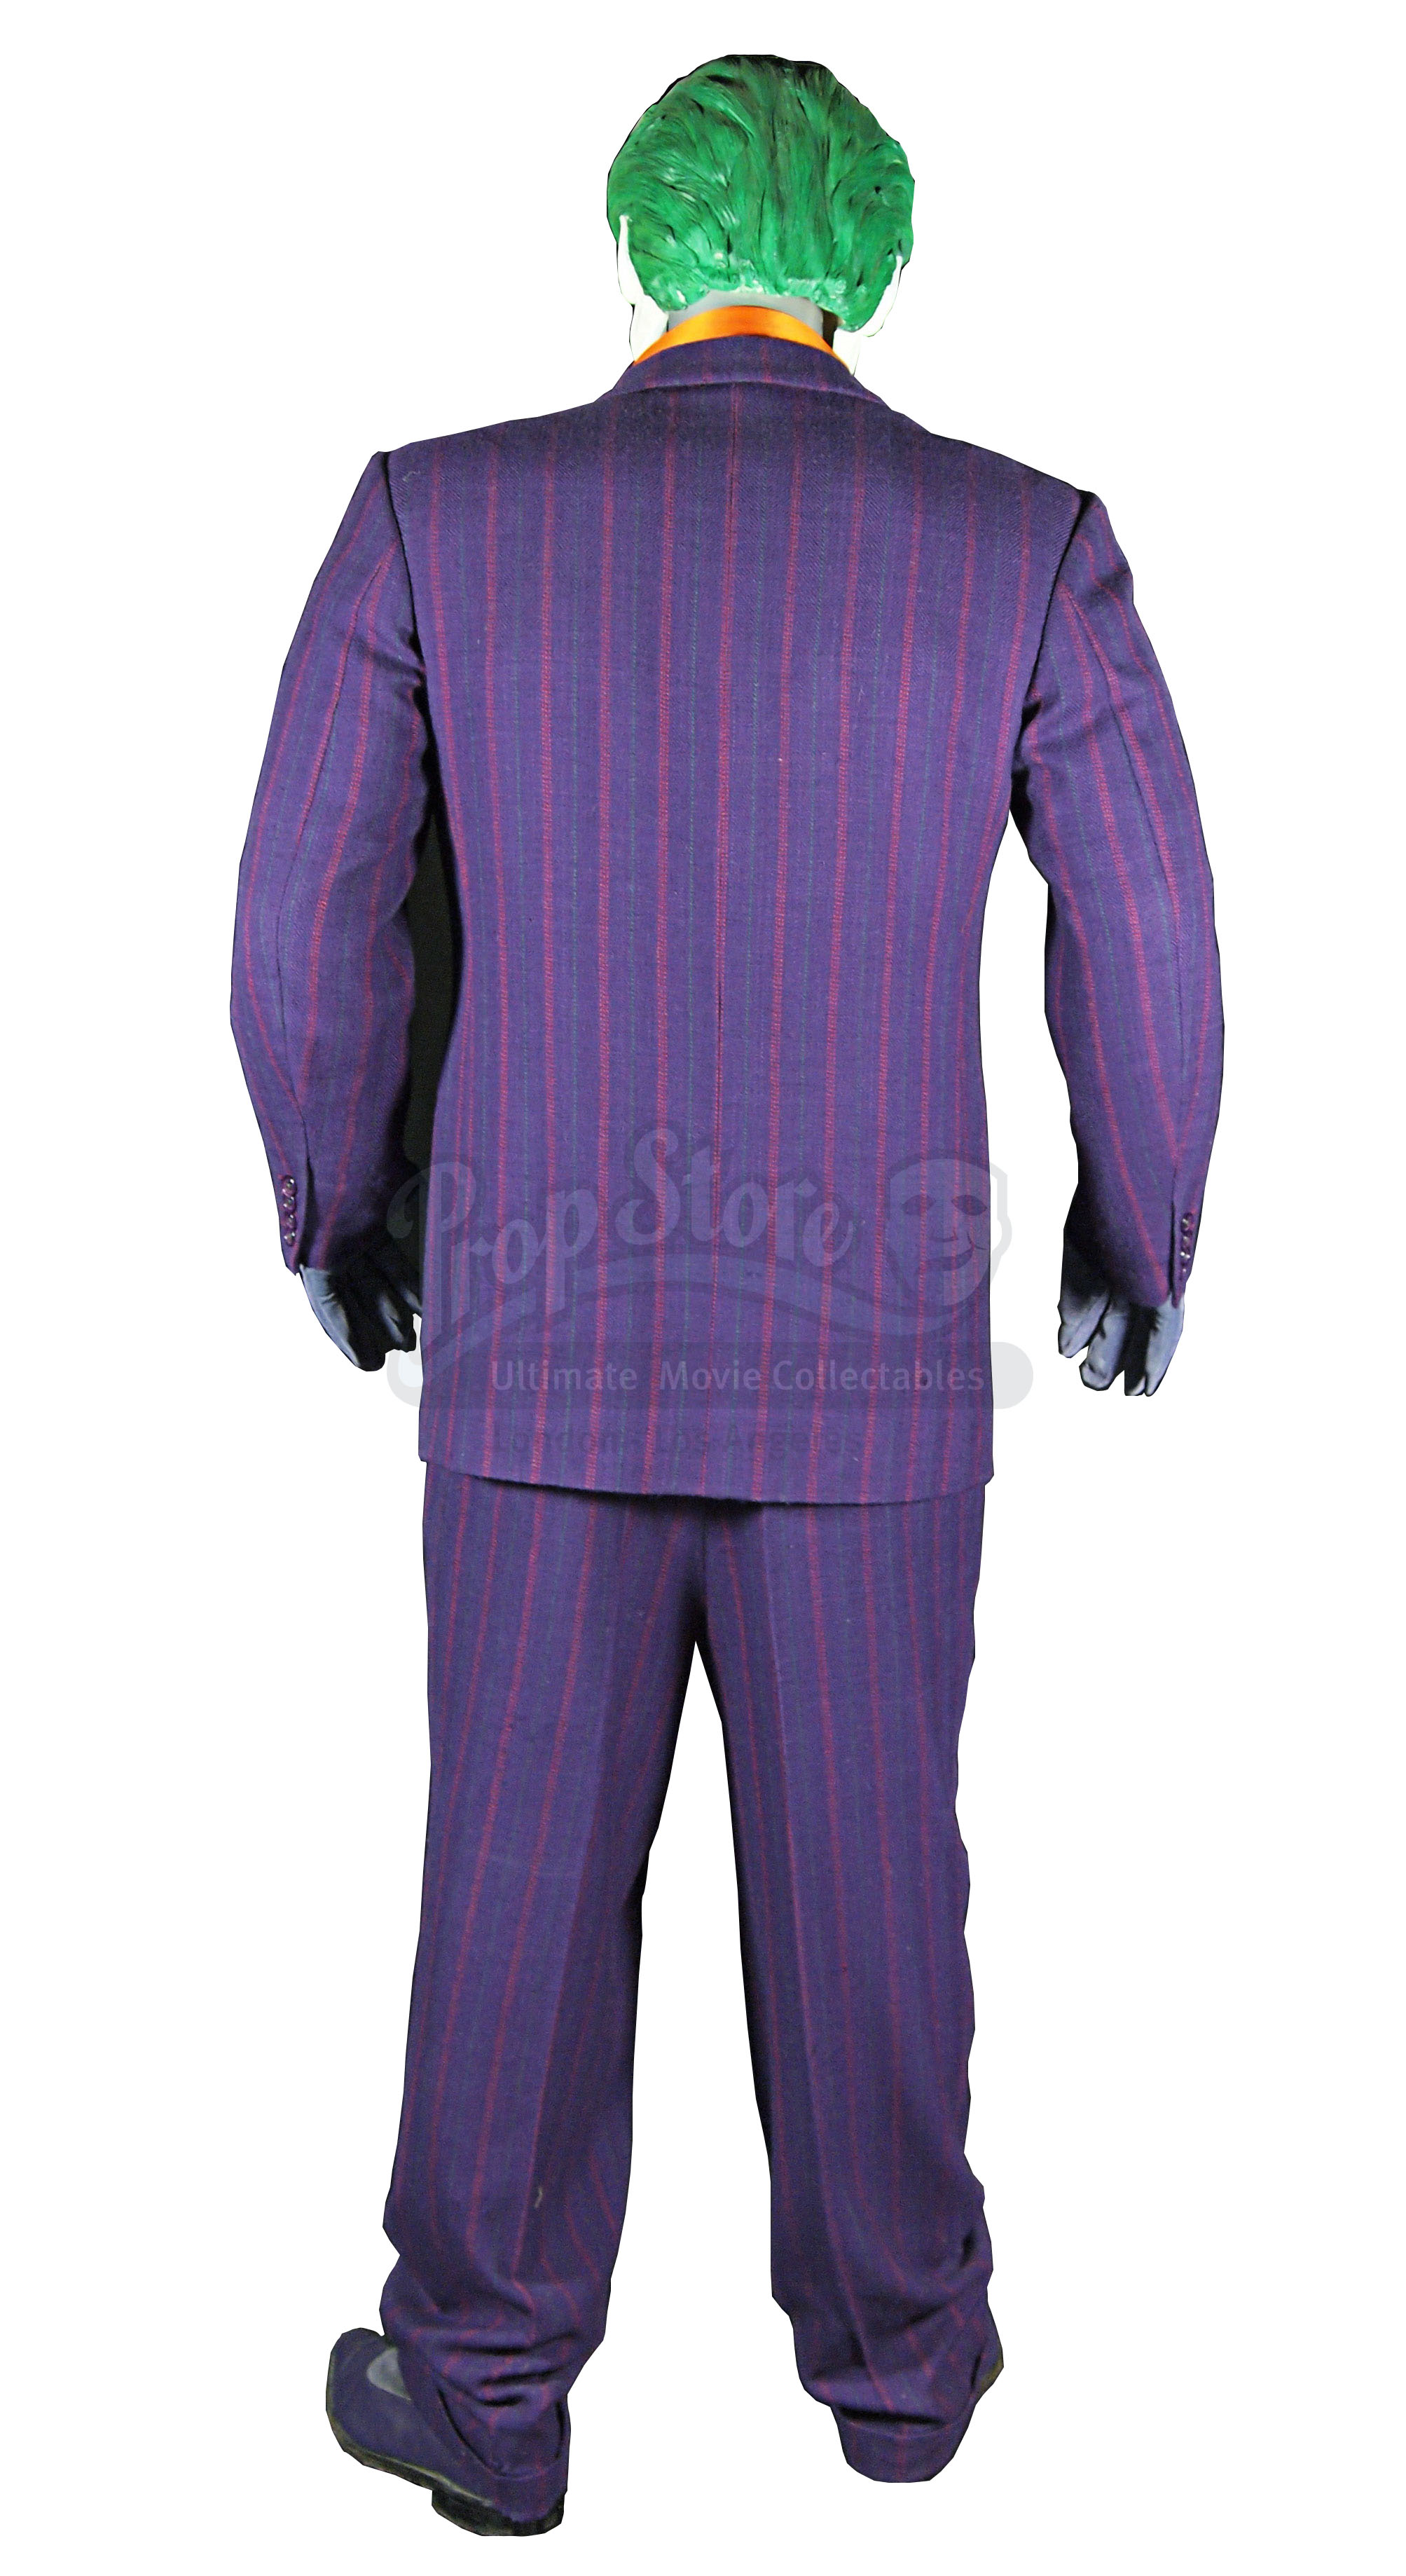 joker costume � prop store ultimate movie collectables